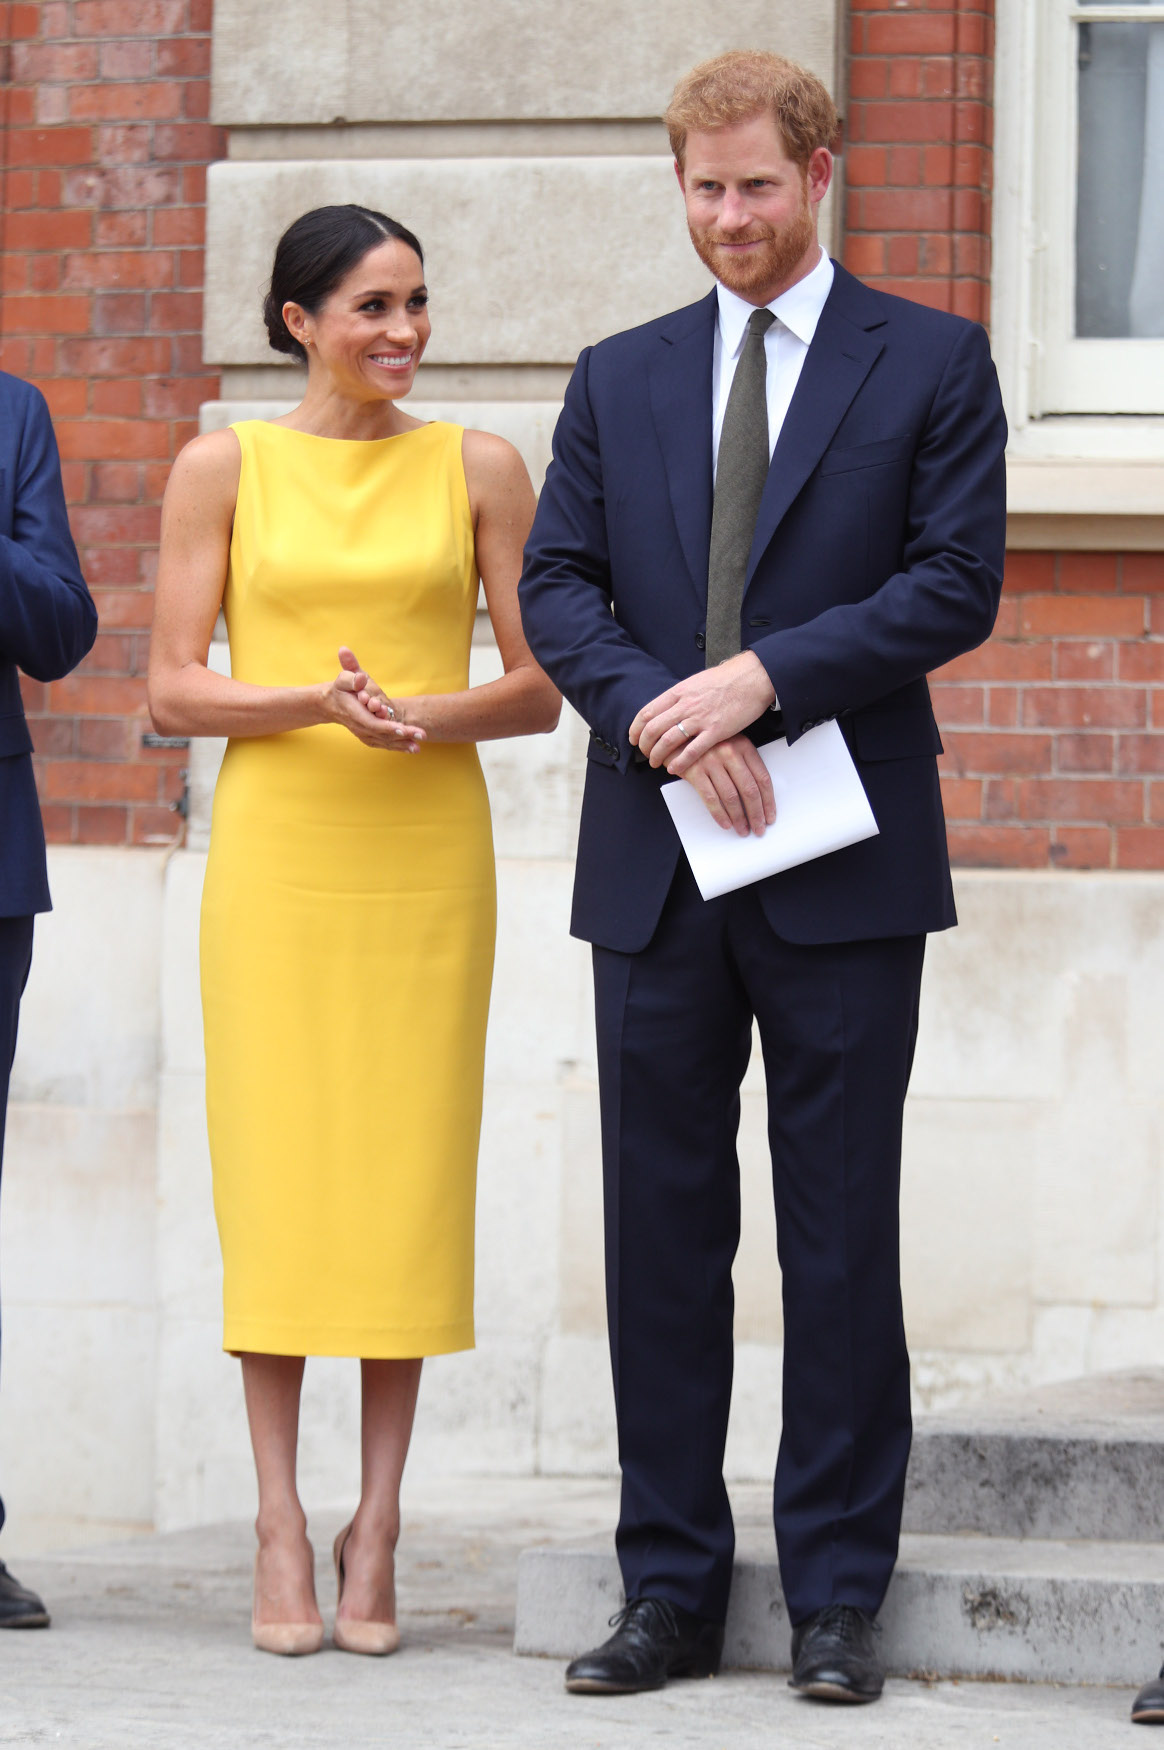 LONDON, ENGLAND - JULY 05: Prince Harry, Duke of Sussex and Meghan, Duchess of Sussex attend the Your Commonwealth Youth Challenge reception at Marlborough House on July 05, 2018 in London, England. (Photo by Yui Mok - WPA Pool/Getty Images)